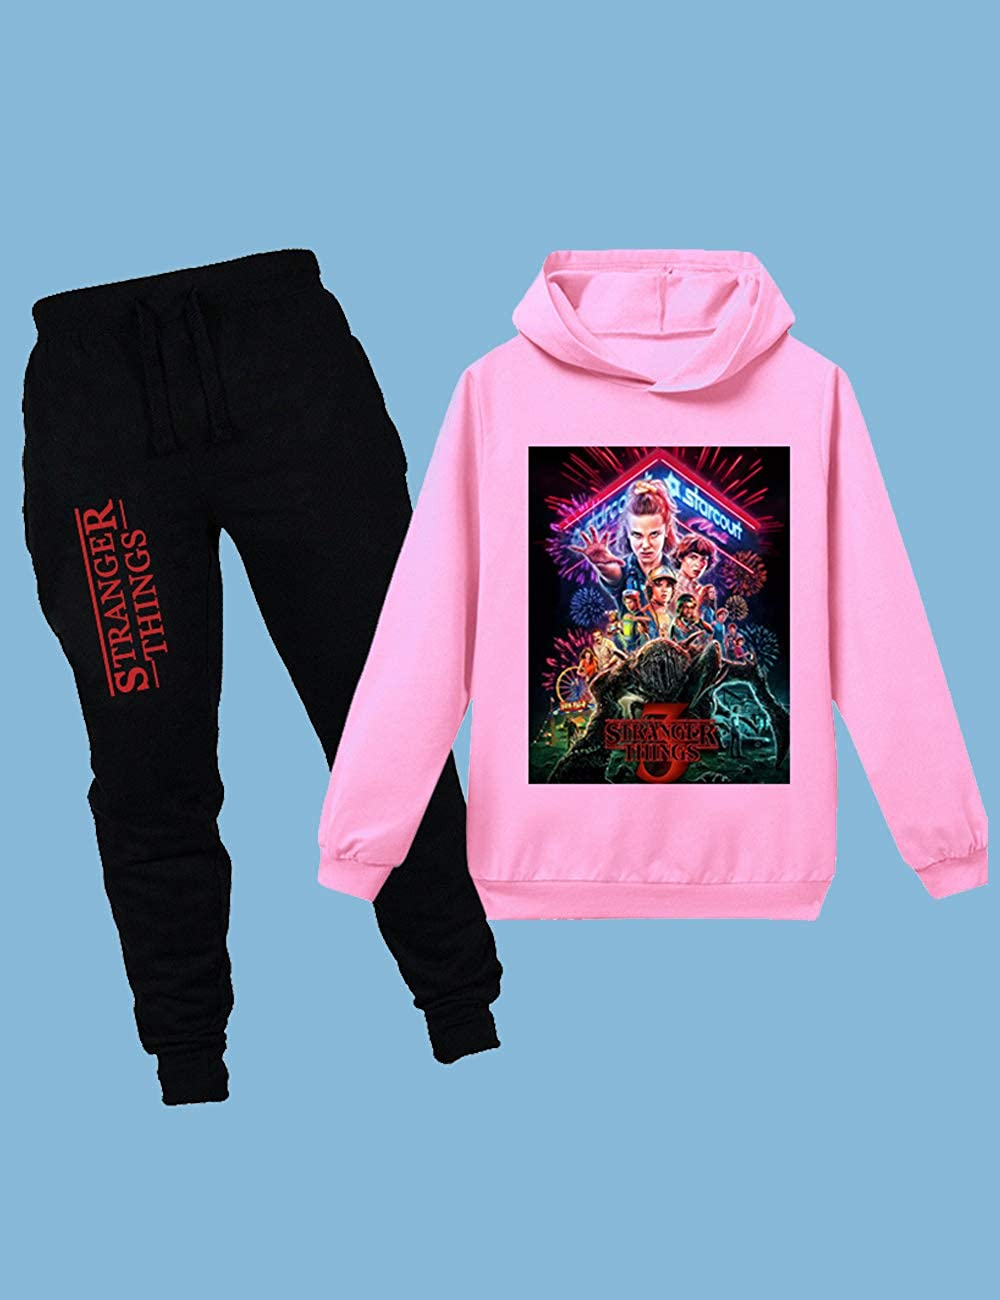 Sweatpants Boys Jogging Bottoms and Round Neck Hoodies Top Girls Pullover and Trousers Stranger Things Tracksuit 2 Pieces Sets Children Jogging Sportwear Kids Jogger Sweatshirt